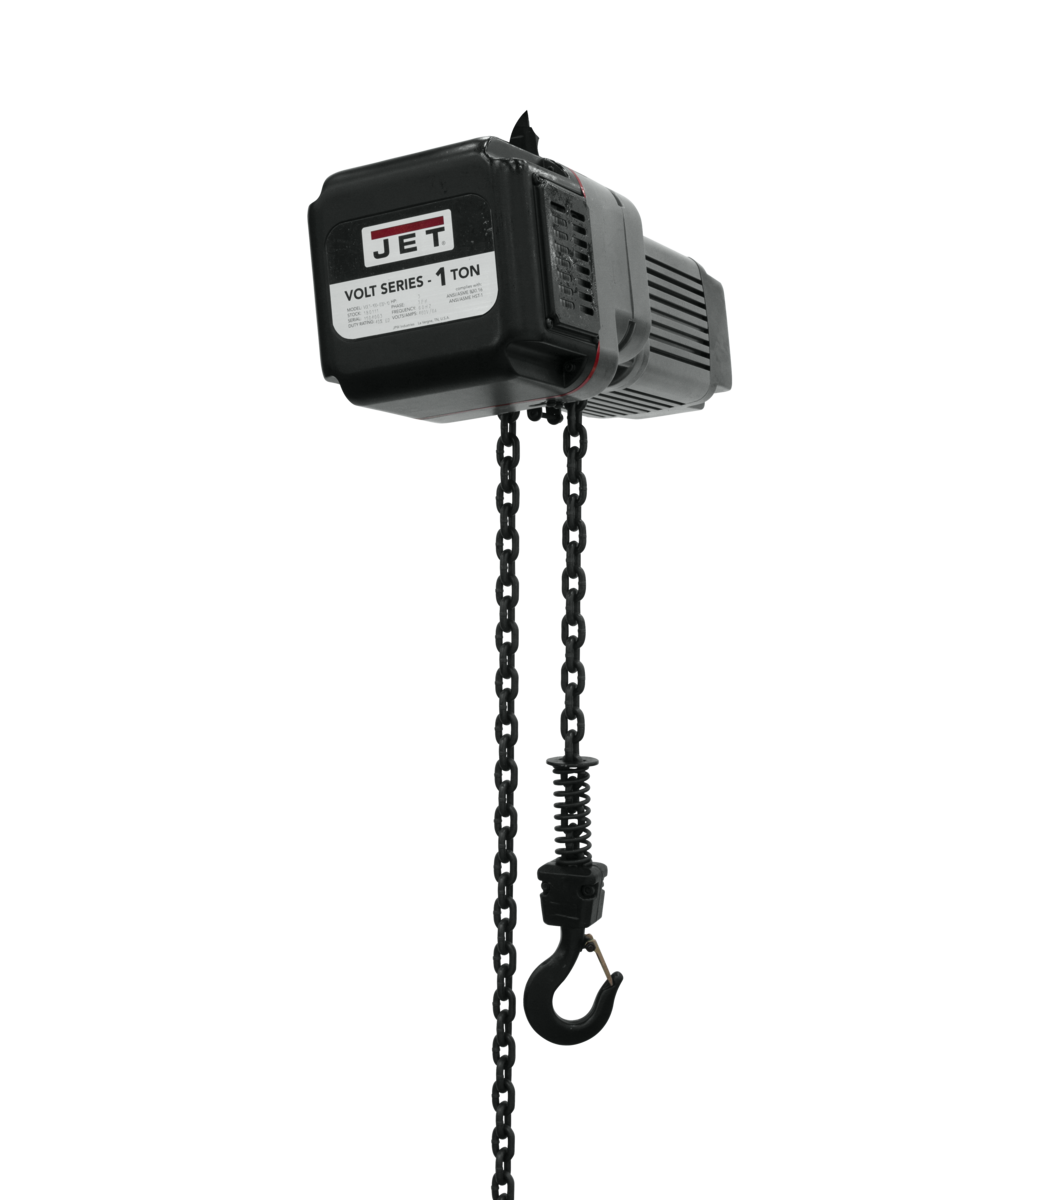 VOLT 1T VARIABLE-SPEED ELECTRIC HOIST 1PH/3PH 230V 15' LIFT